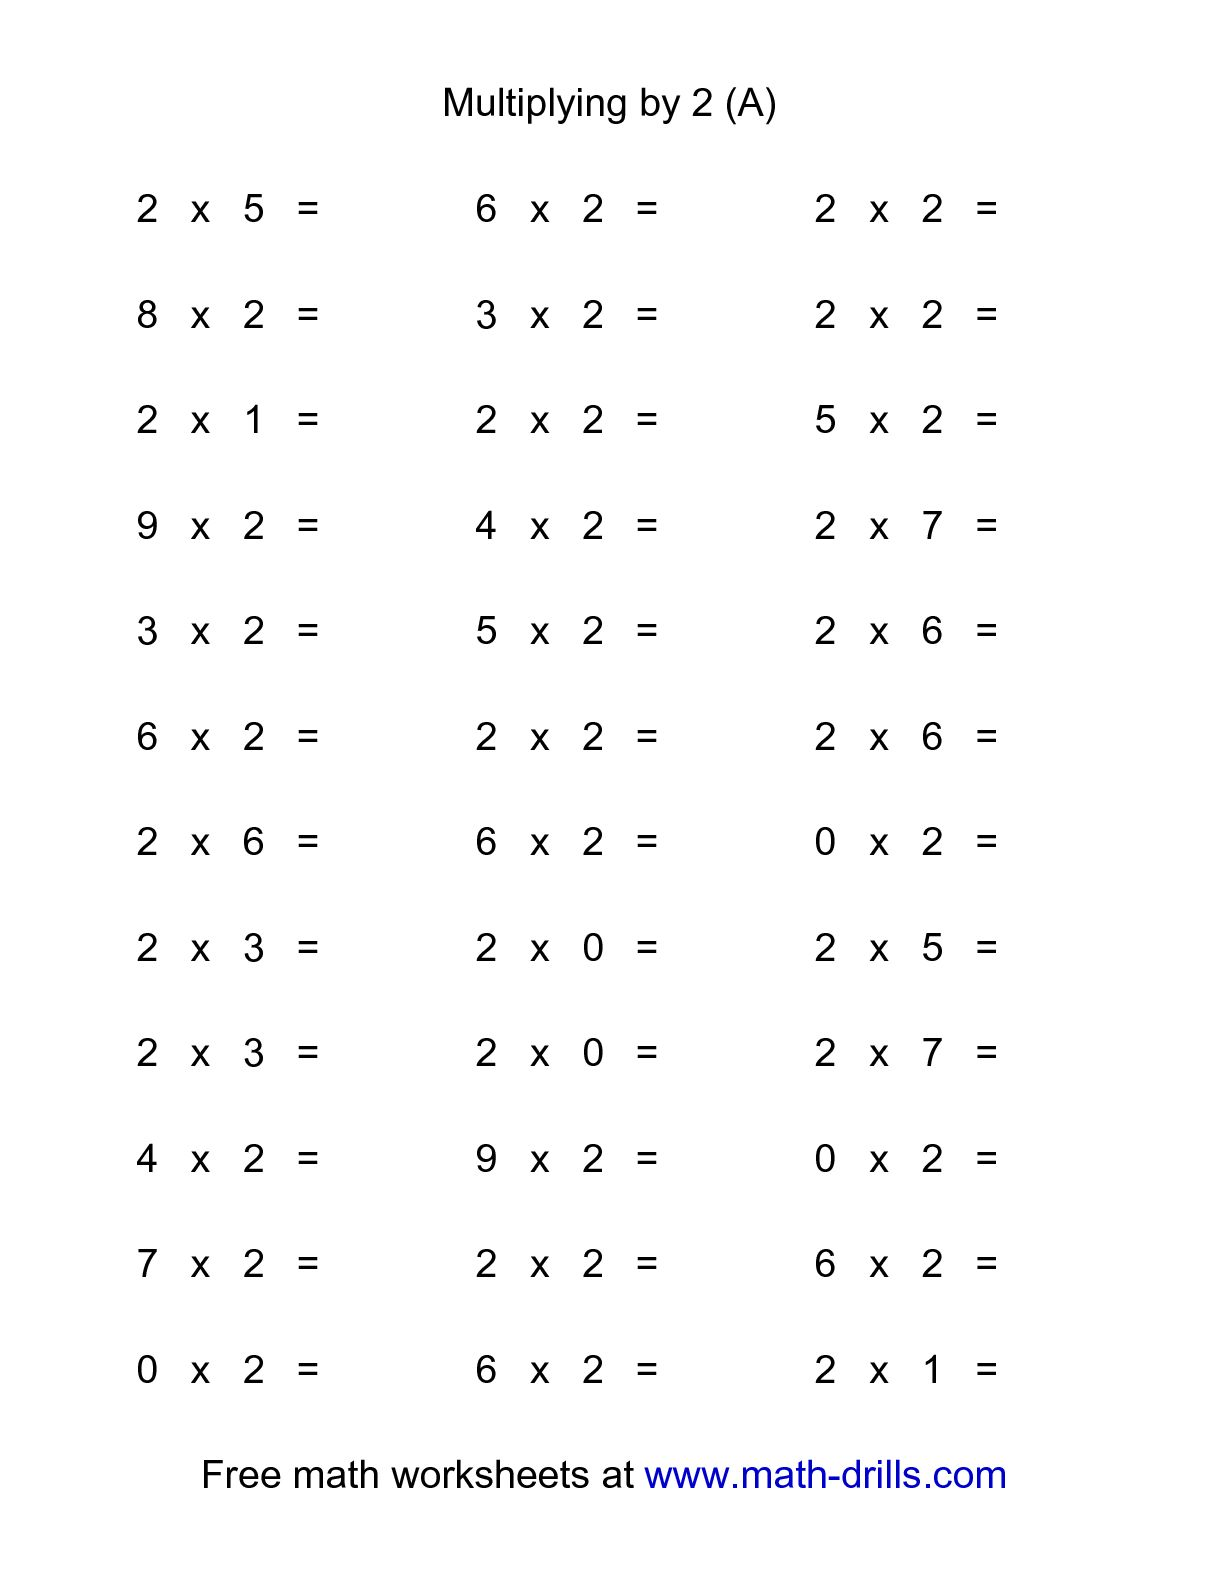 36 Horizontal Multiplication Facts Questions 2 By 0 9 A